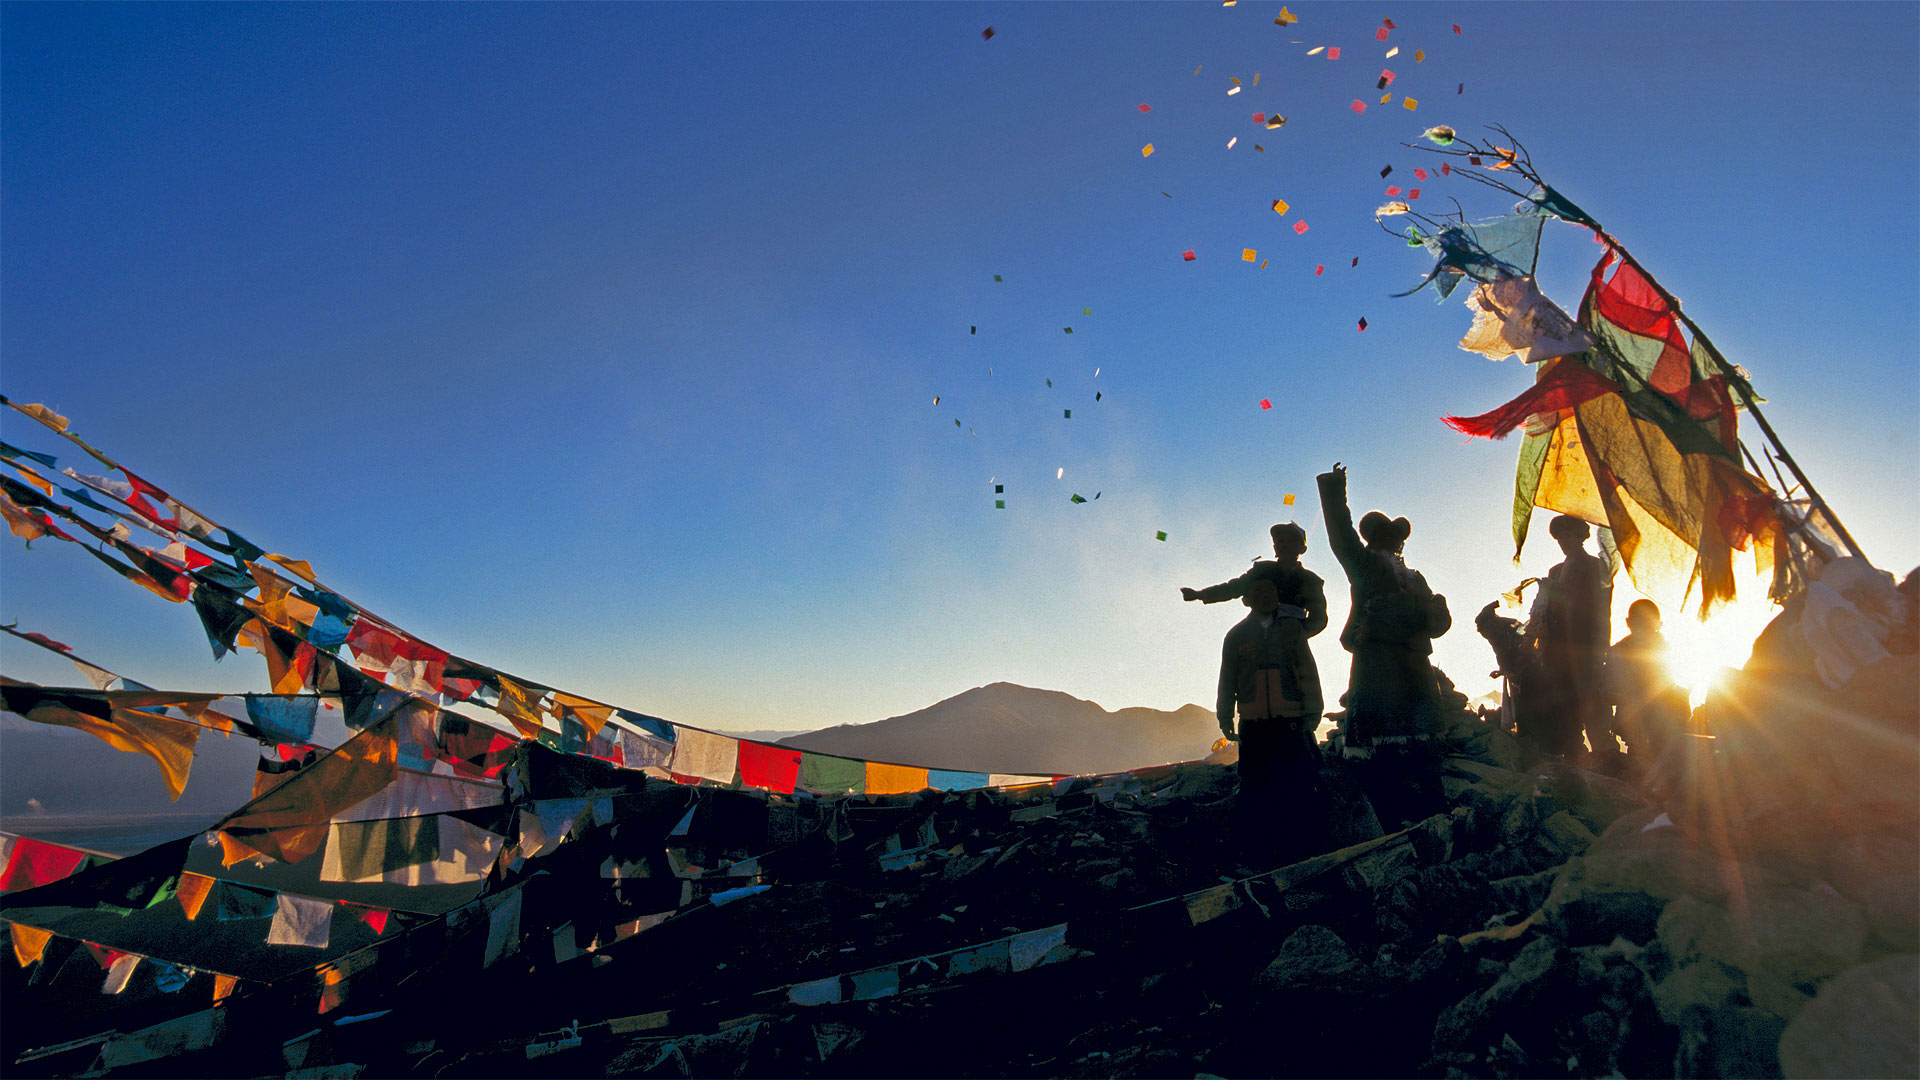 Pilgrims throwing wind horses into the air above Ganden Monastery for the New Year in Tibet, China (© Ian Cumming/plainpicture)(Bing United States)